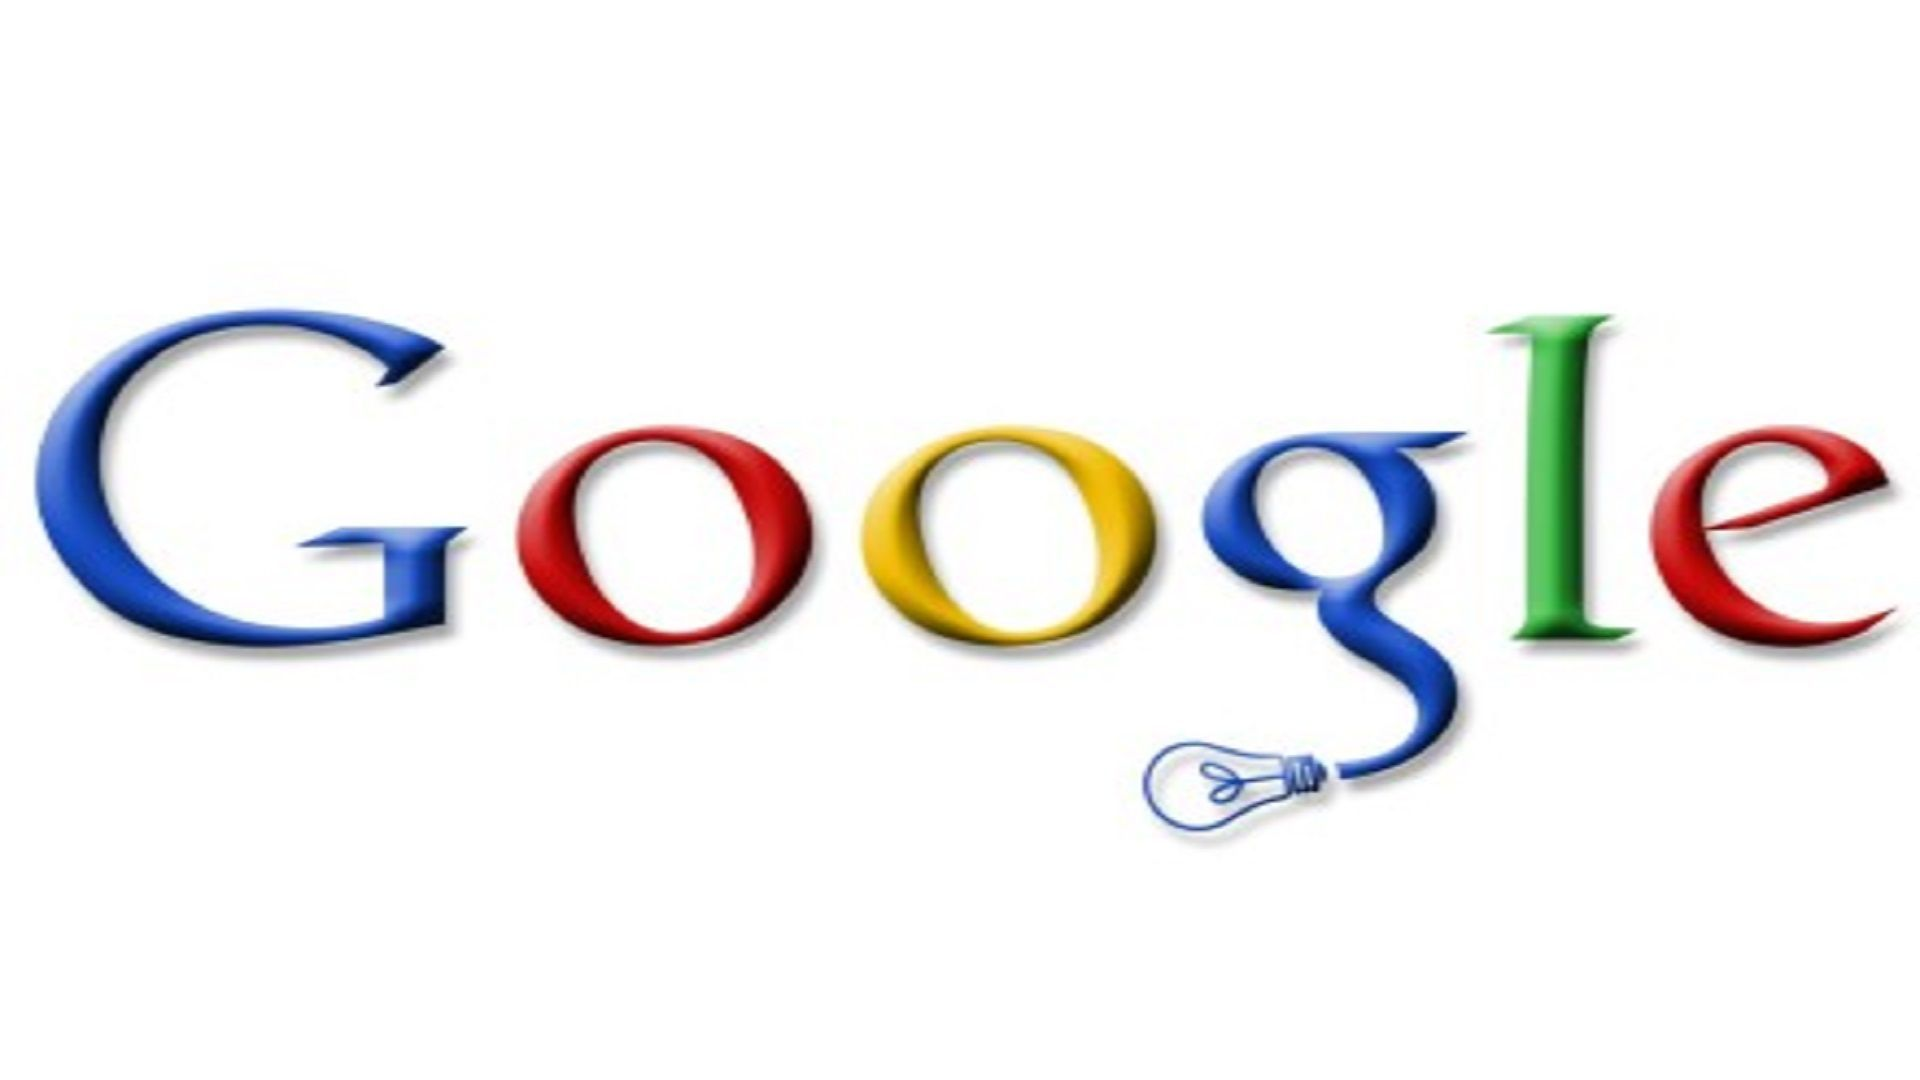 Wallpapers Google Search 46 1920x1080